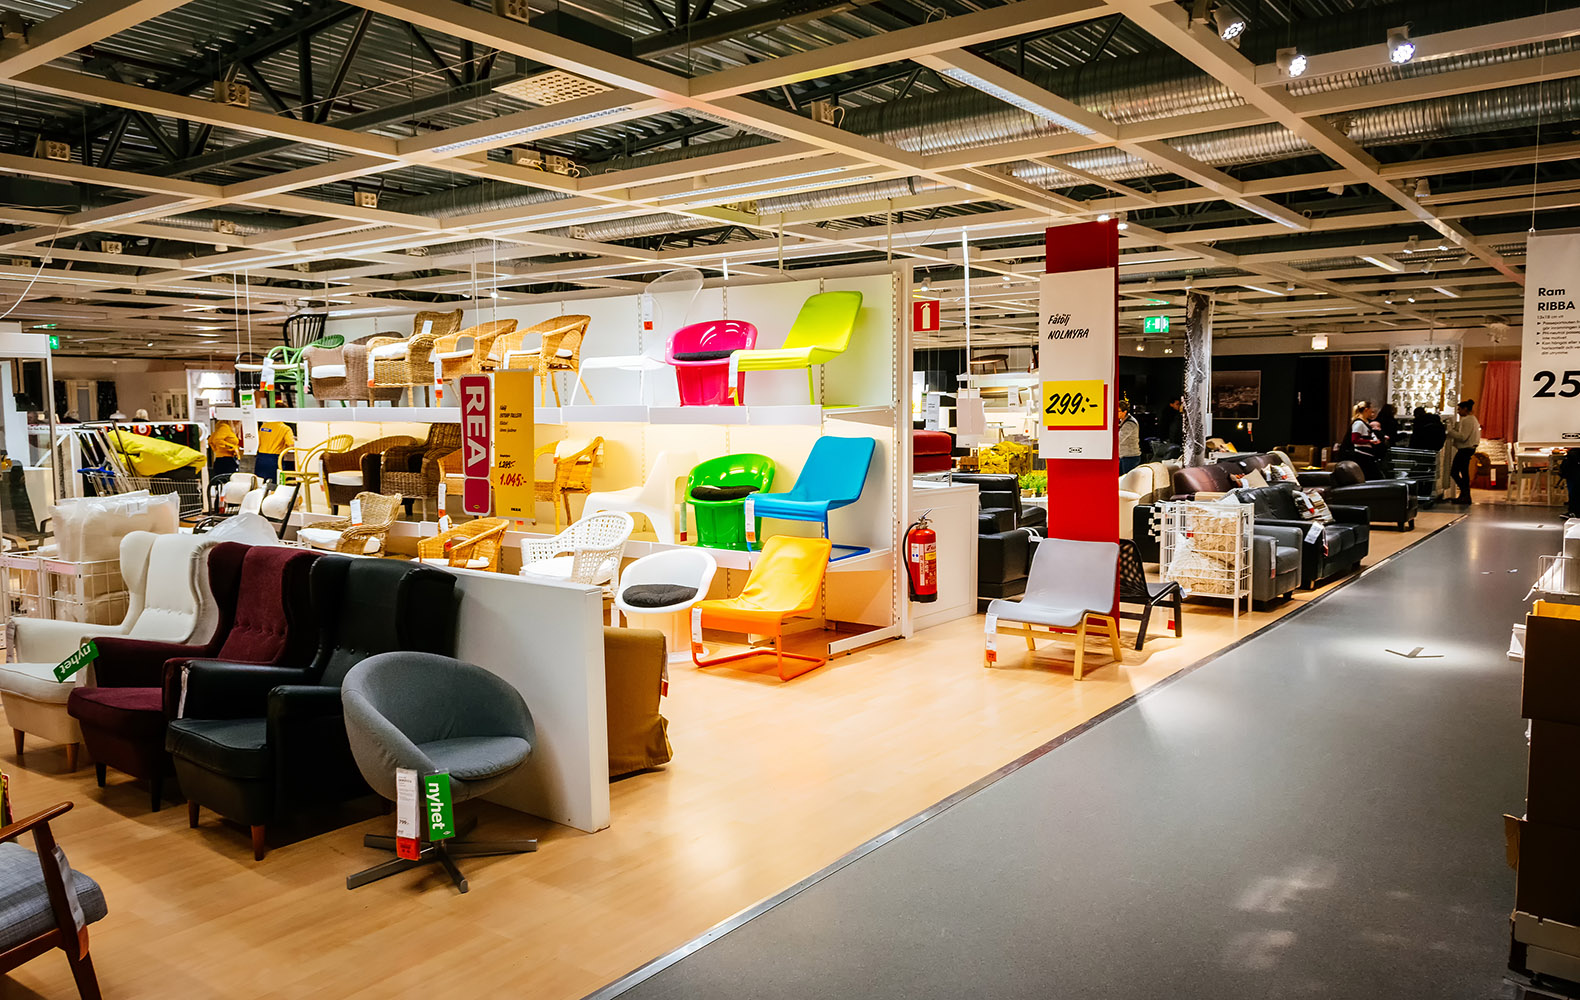 Ikea Incoming International Company To Open Six Stores Across Delhi Ncr